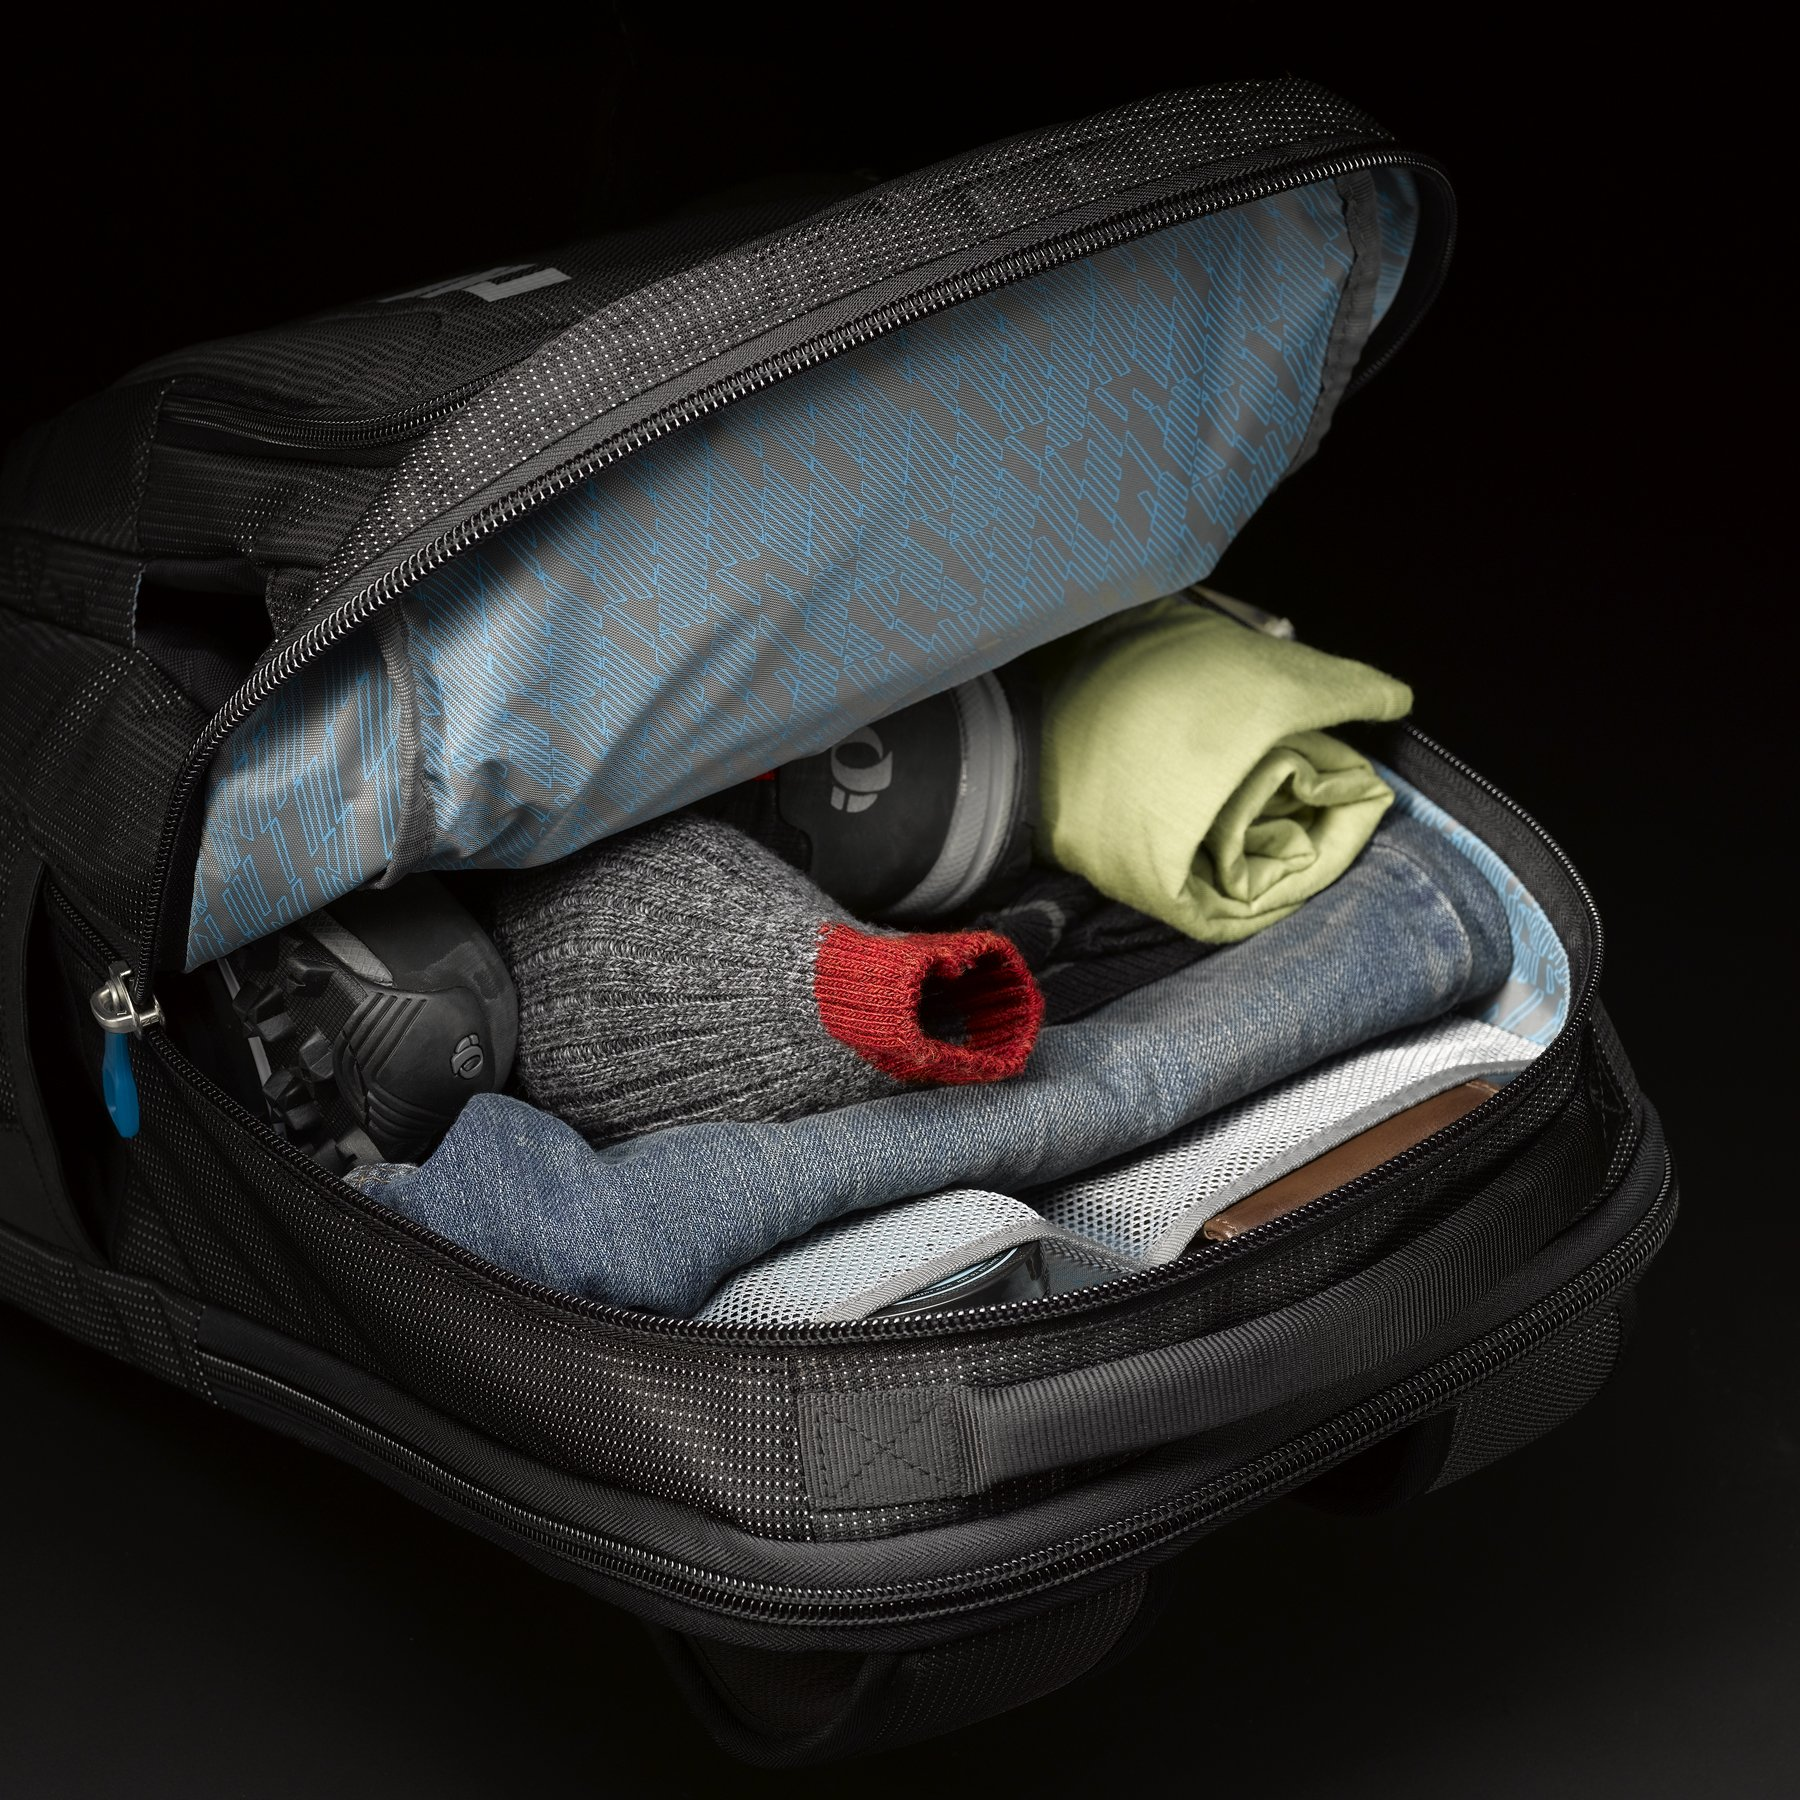 Thule Crossover 32L Backpack - Black by Thule (Image #10)